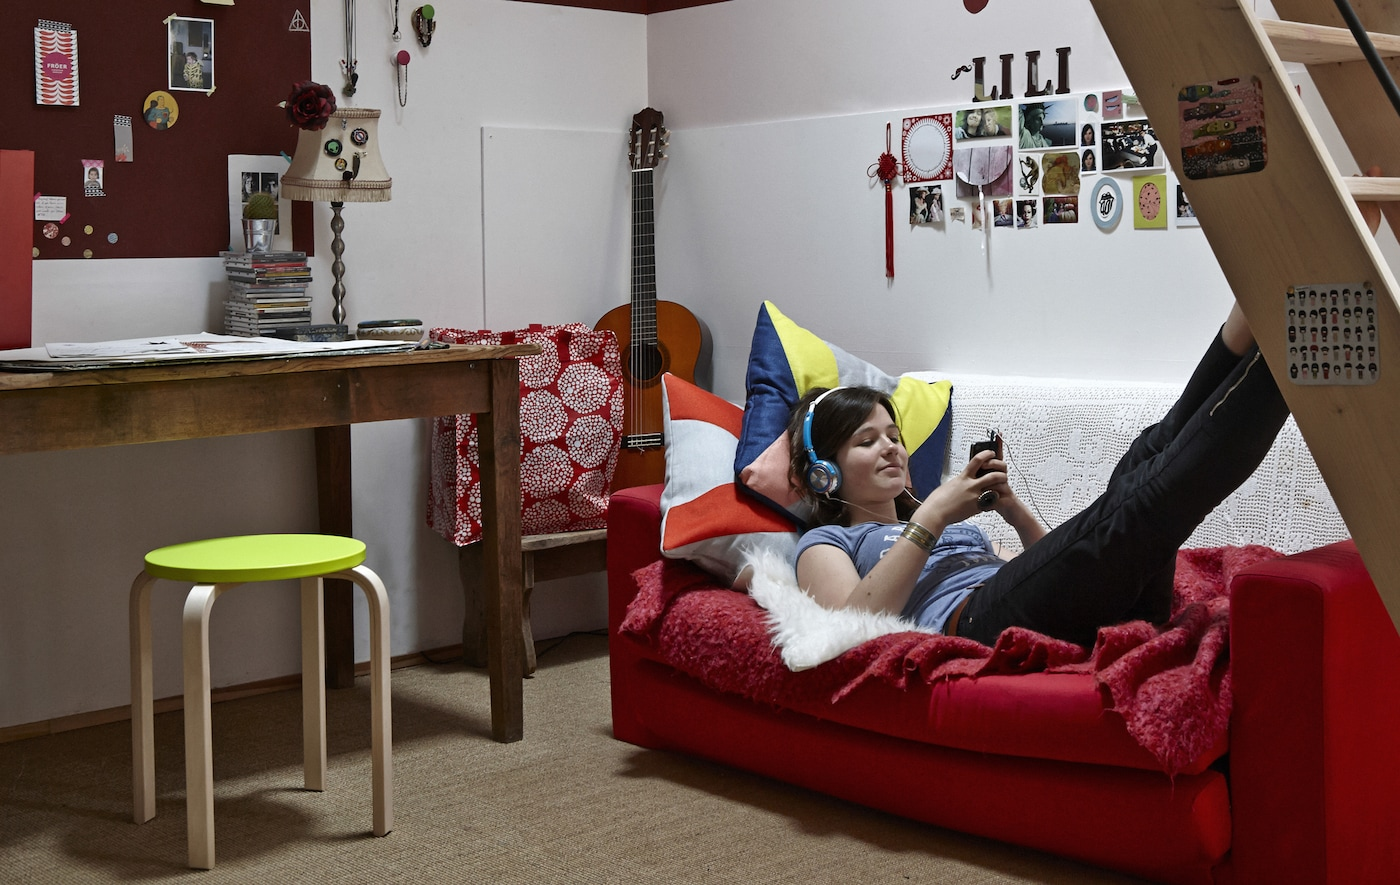 Create a cool space for teenagers to hang out.